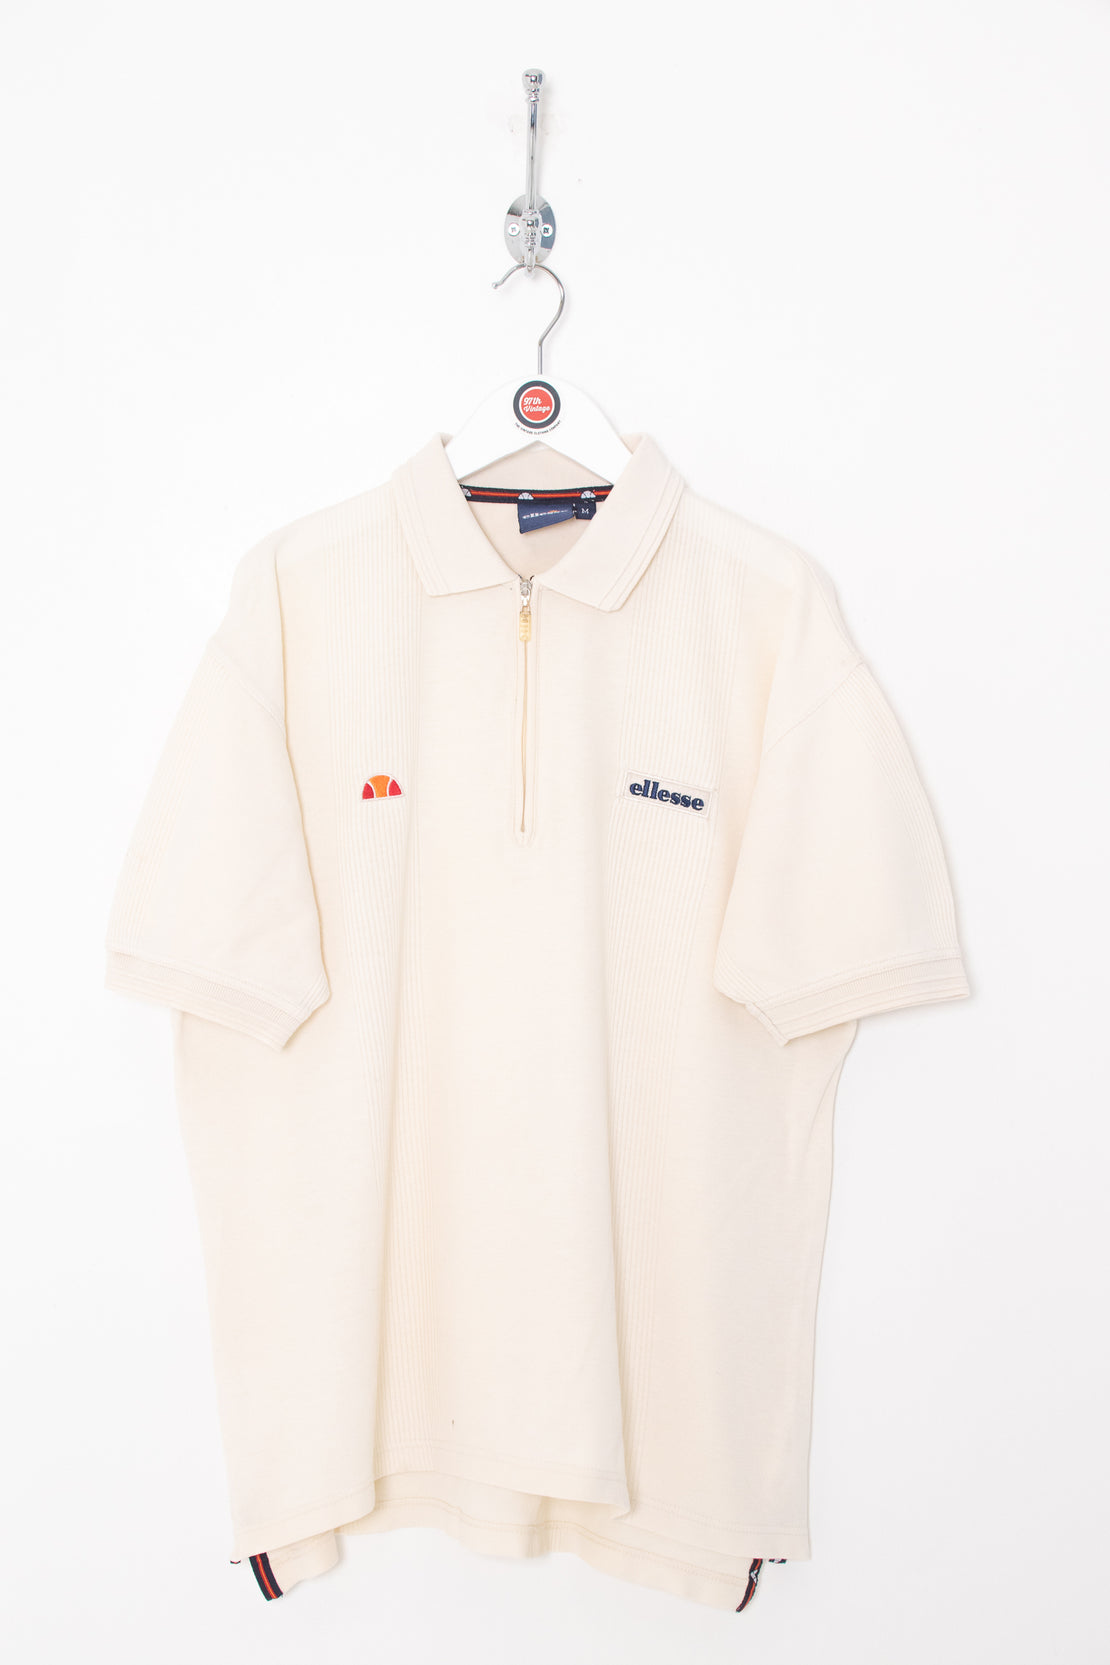 Ellesse 1/4 Zip Polo Shirt (M)